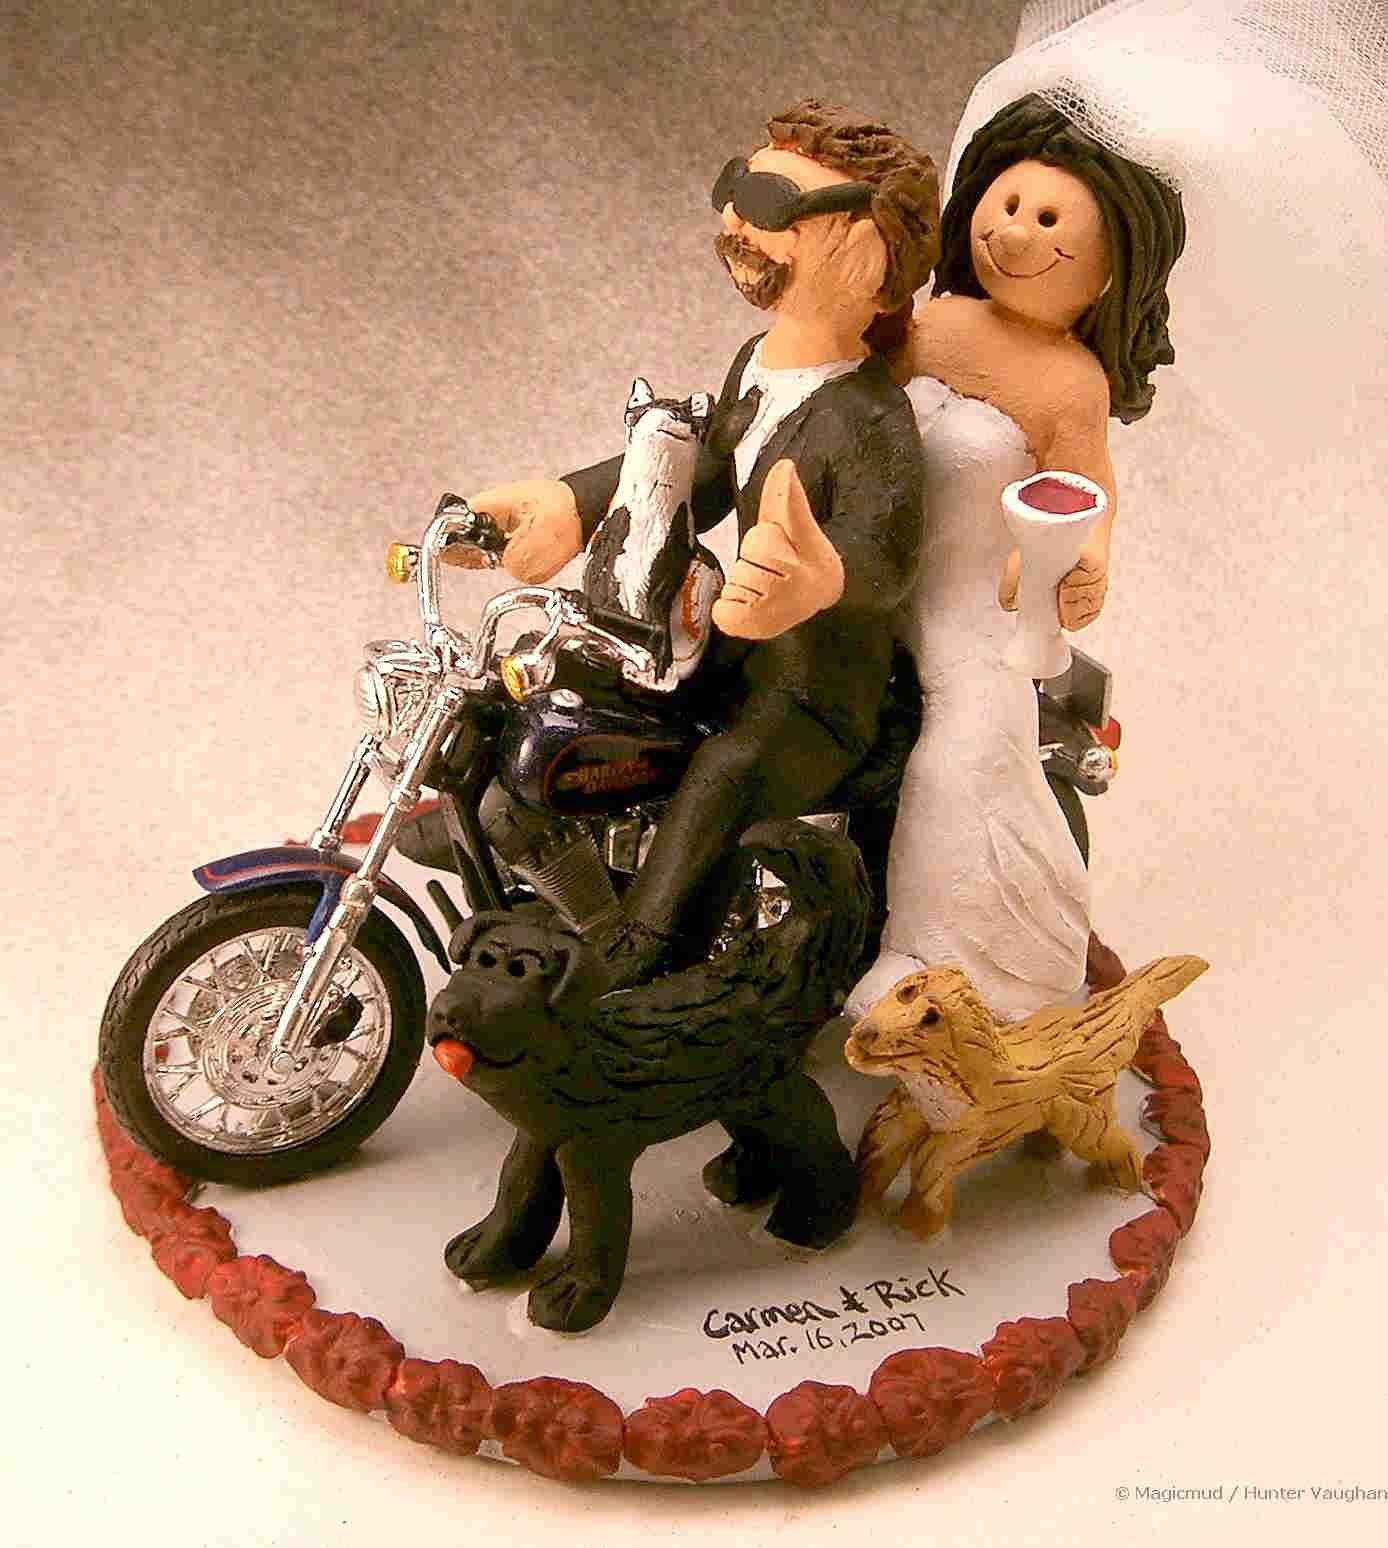 Wedding Cake Toppers Motorbike Wedding Cake Topper Motorbike Custom Wedding Cake Toppers Wedding Cake Toppers Unique